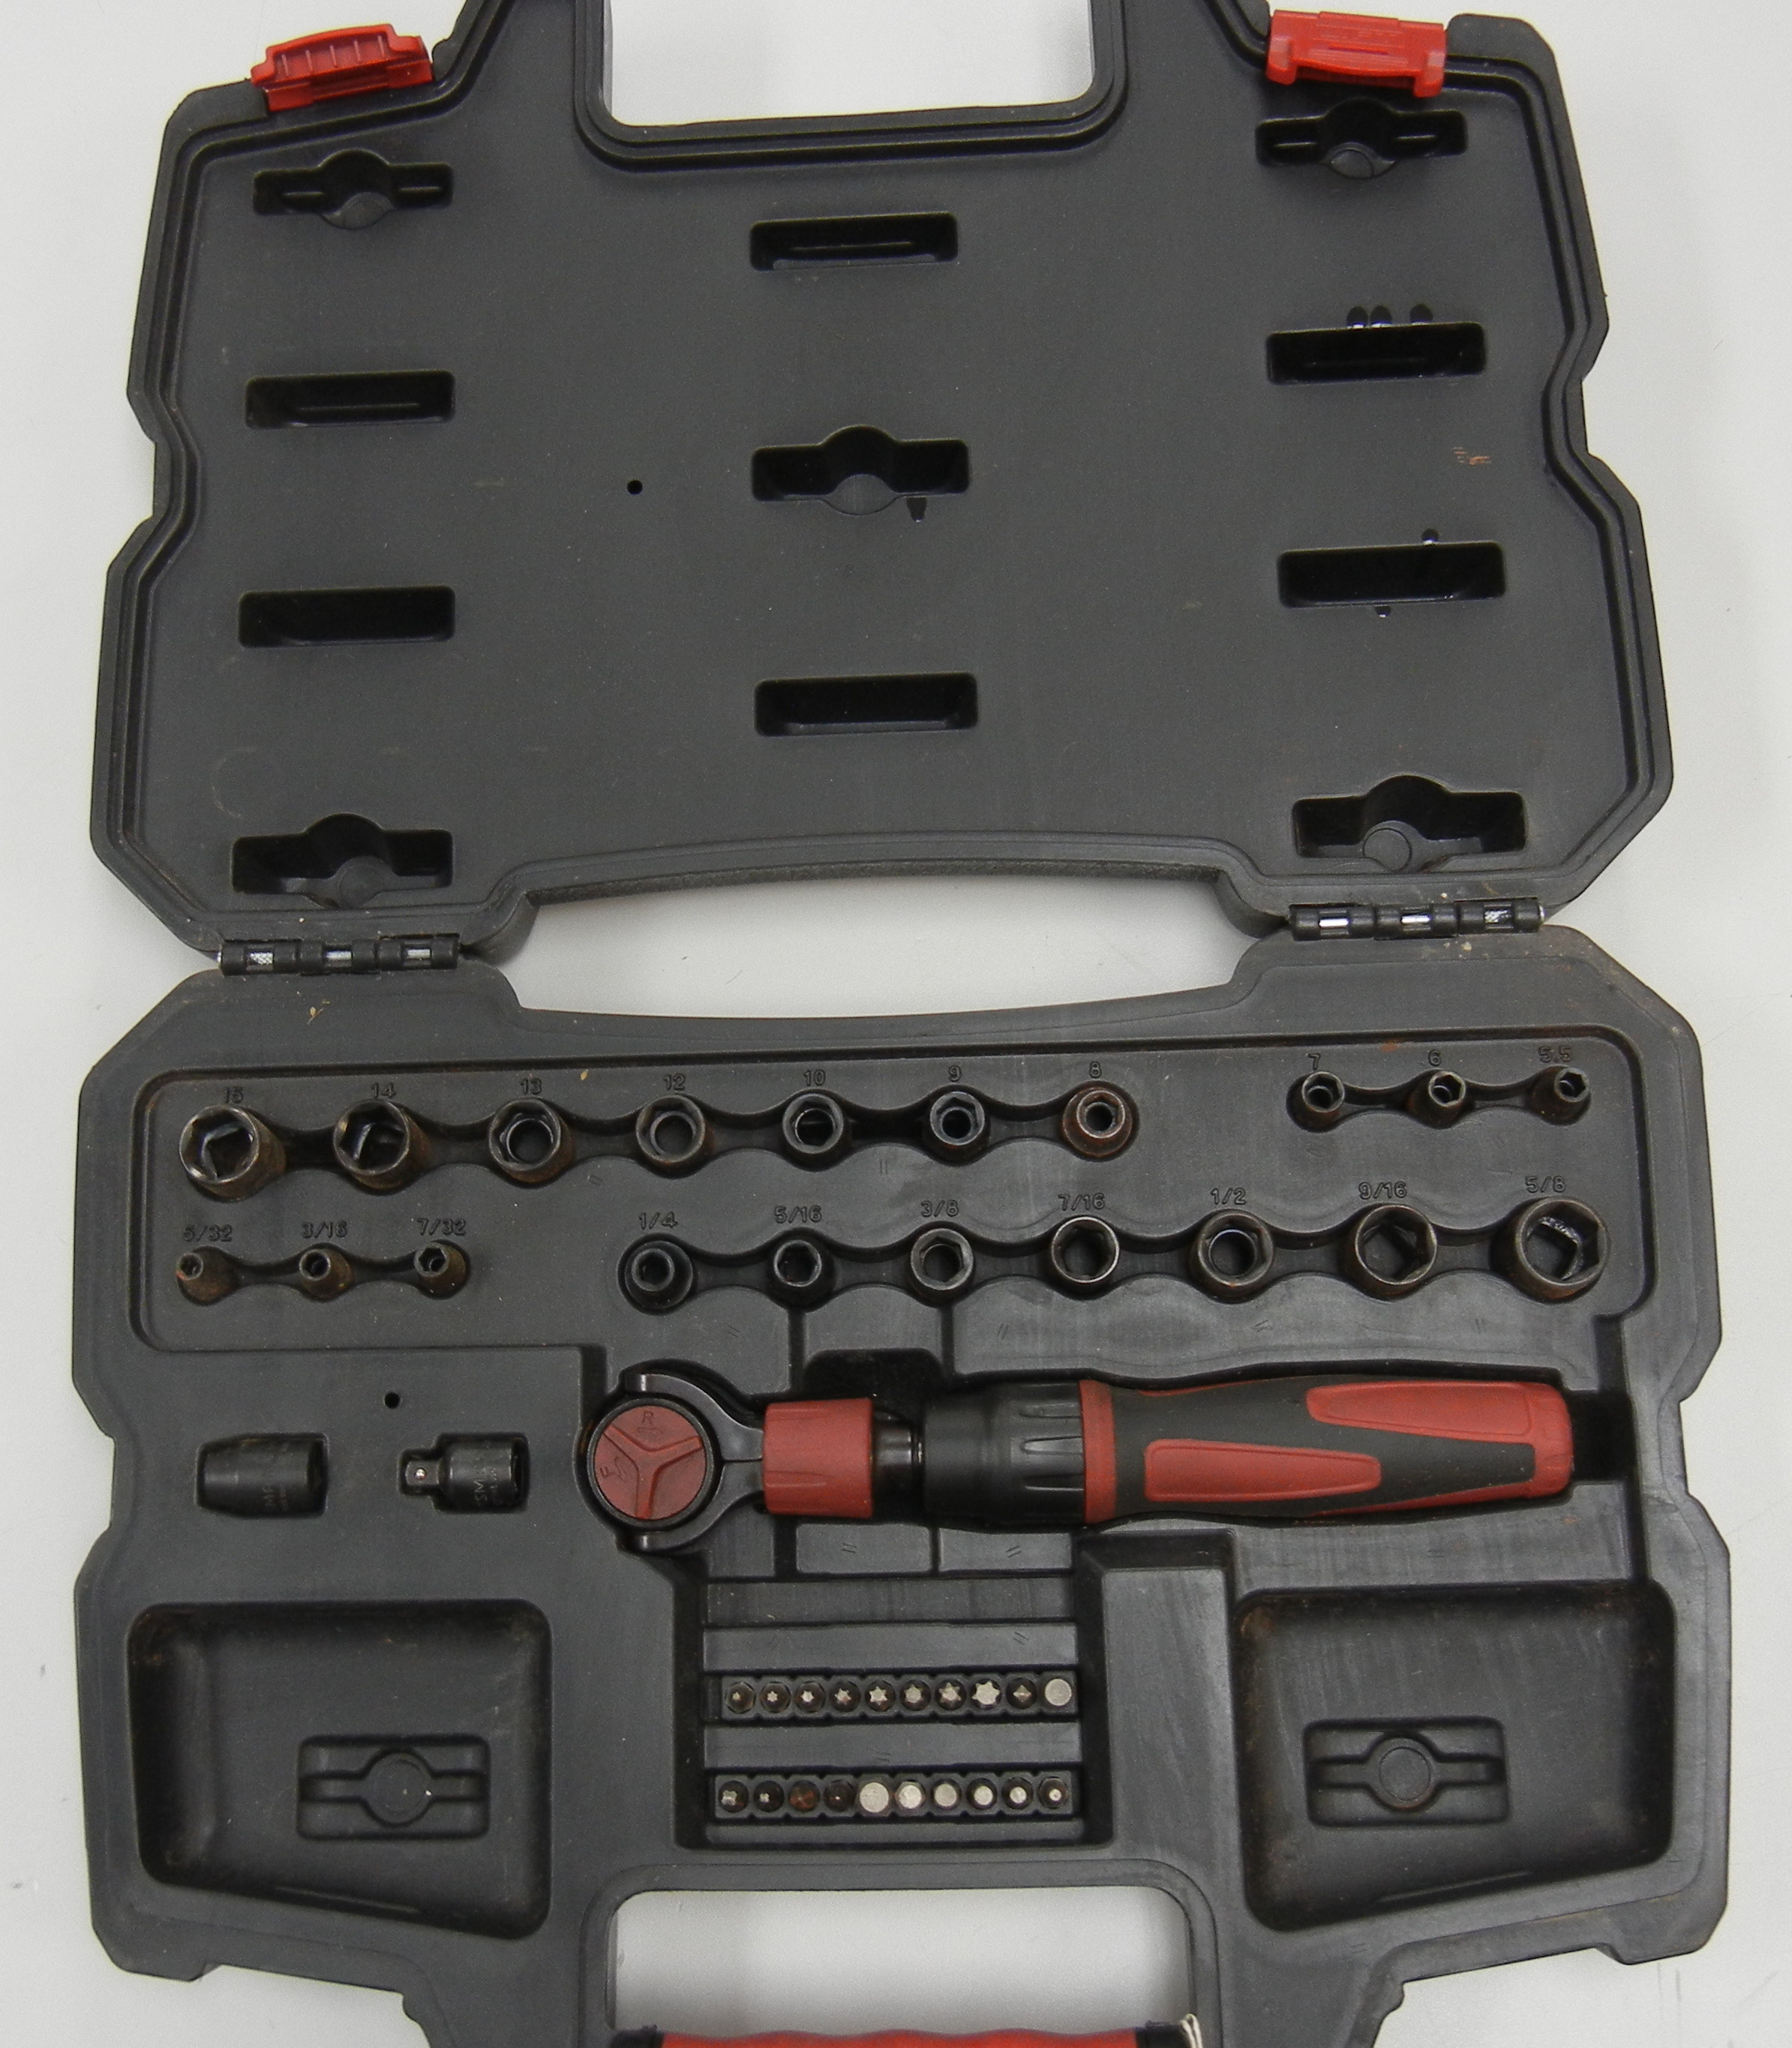 CRAFTSMAN - 4478 - RETRACTABLE RATCHET - WITH SOCKET SET